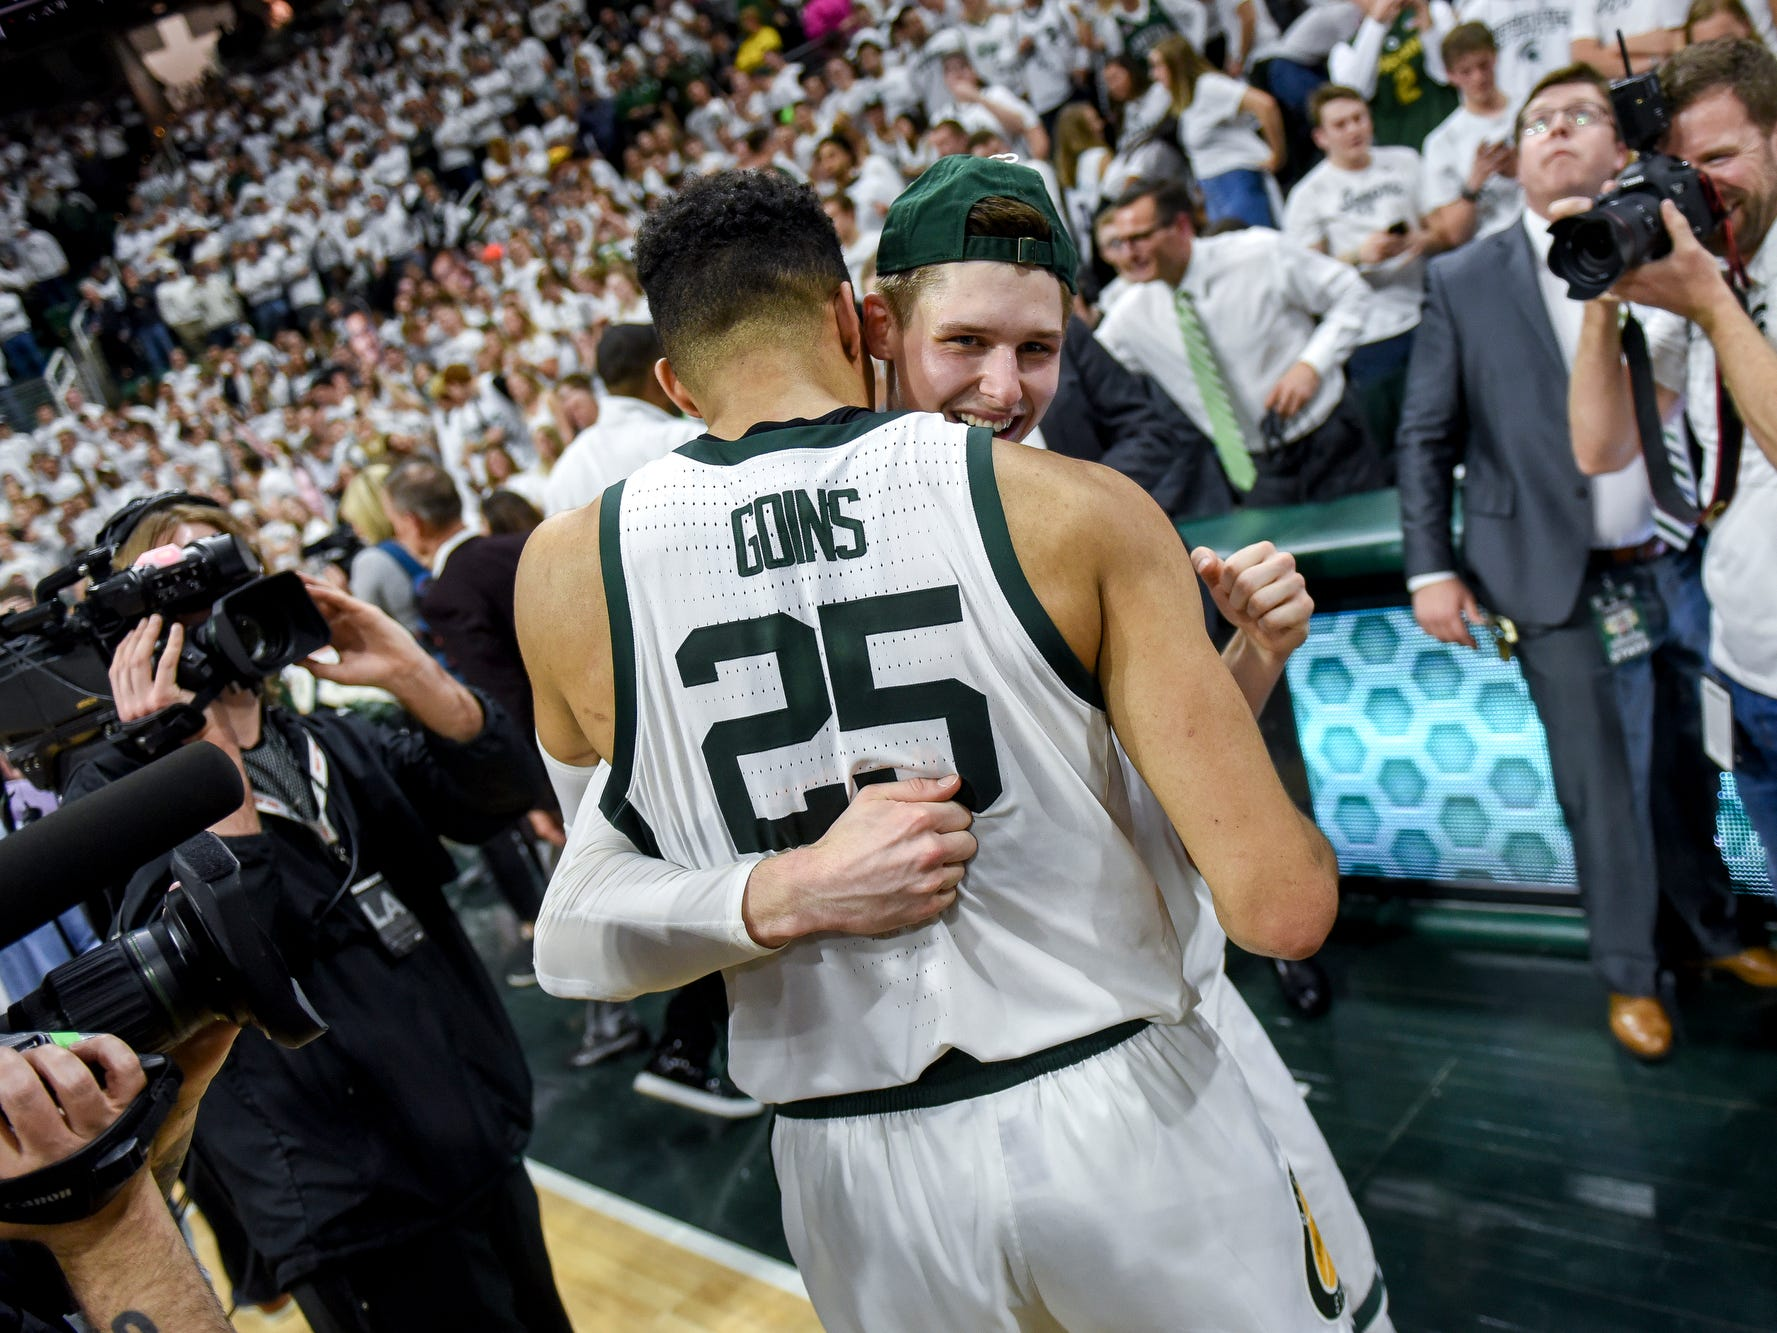 Michigan State senior Matt McQuaid, right, hugs fellow senior Kenny Goins after defeating Michigan 75-63 on Saturday, March 9, 2019, at the Breslin Center in East Lansing.